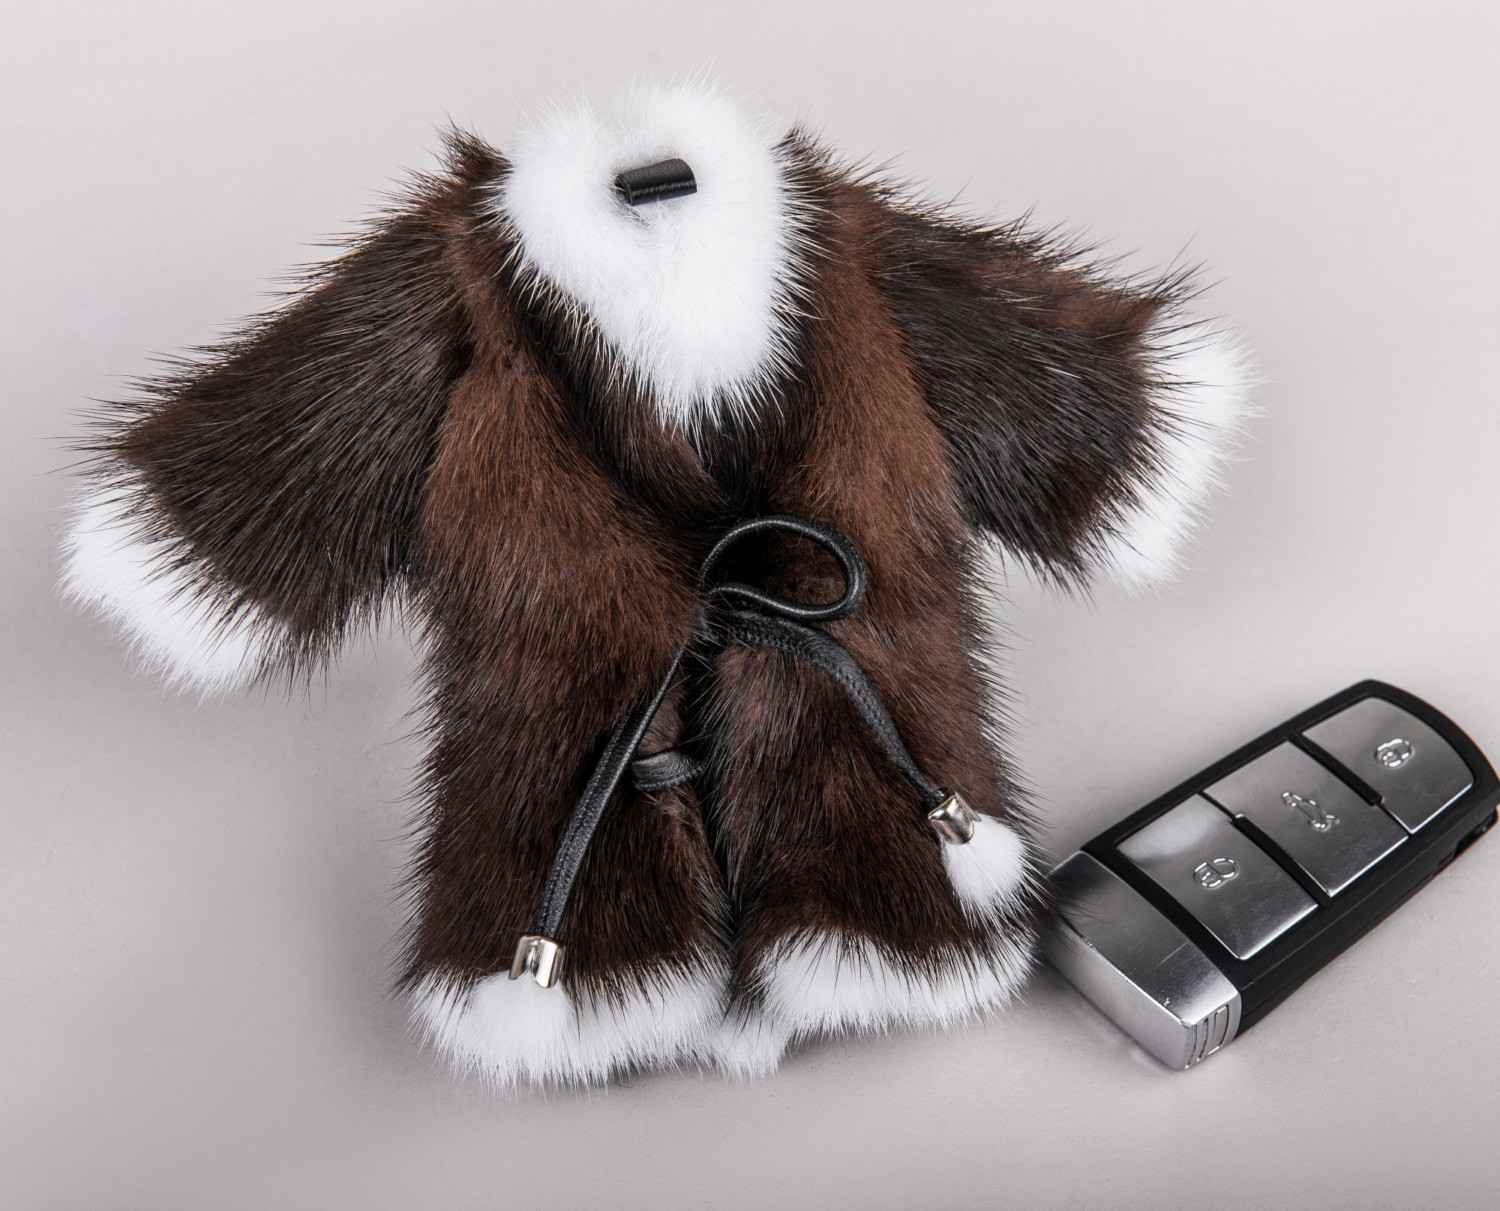 Buy Real Mink Fur Coat Keychain Brown and White